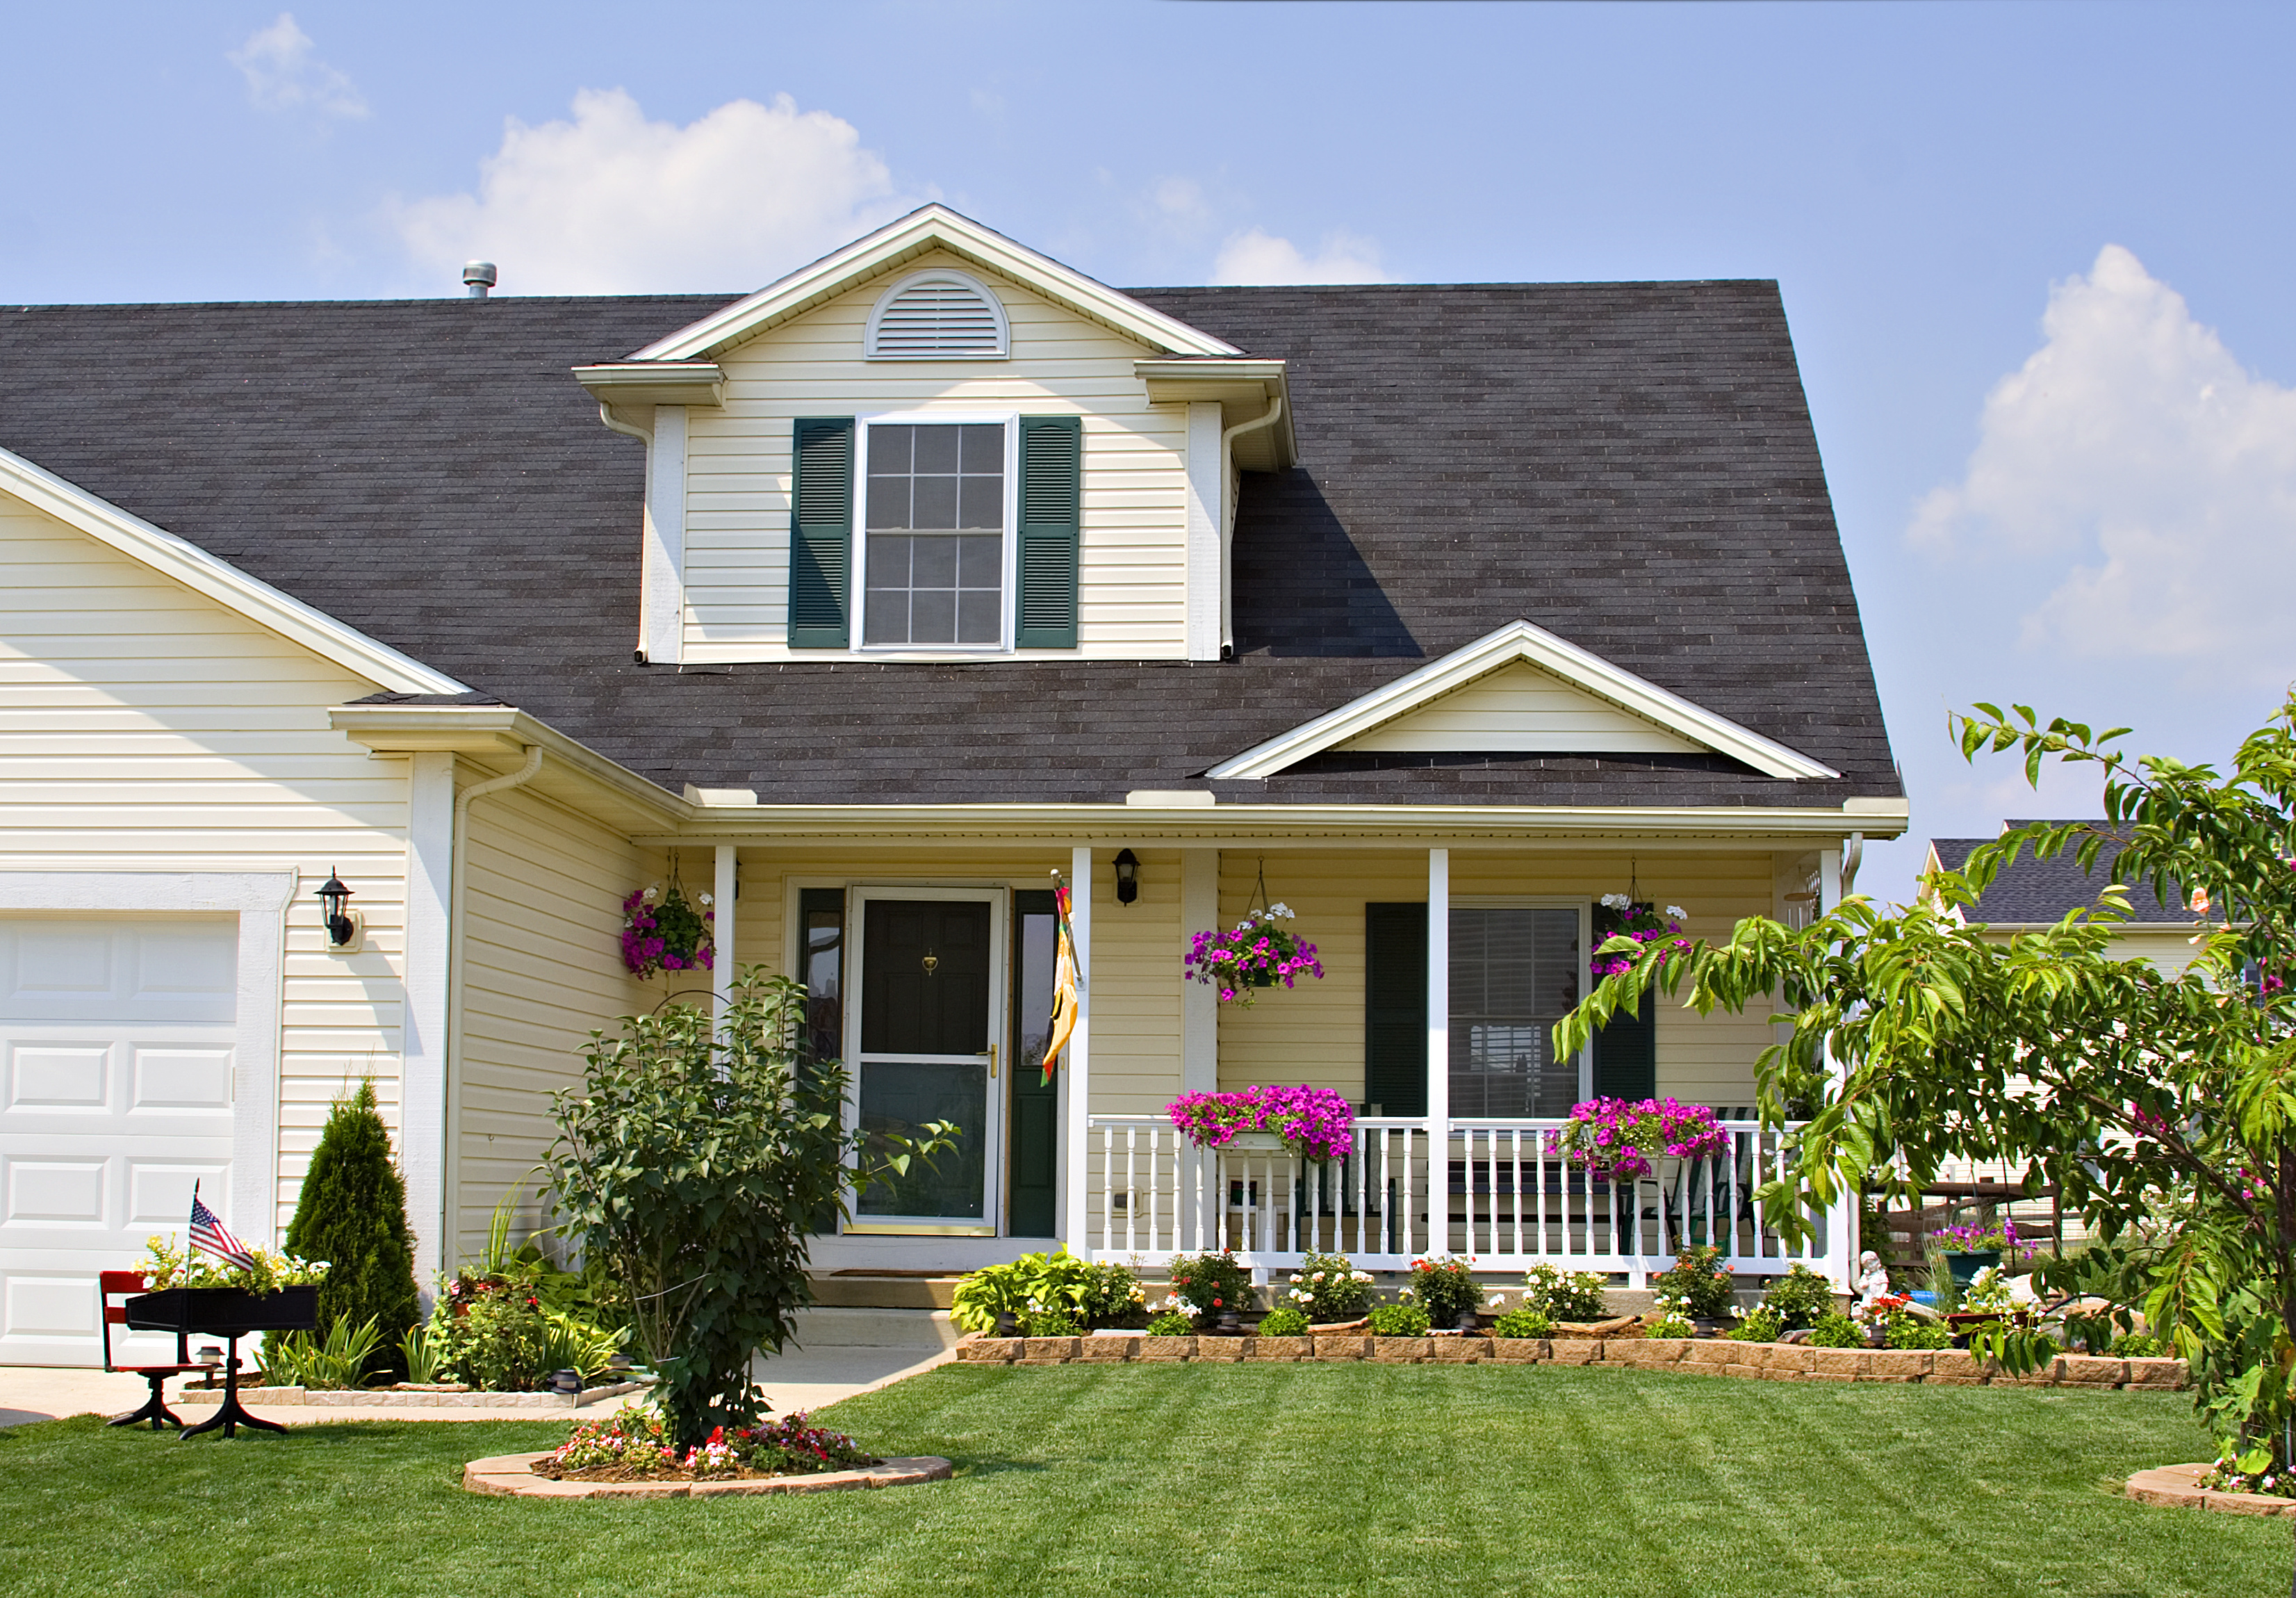 Curb appeal can help you sell your house quickly and for the most money.